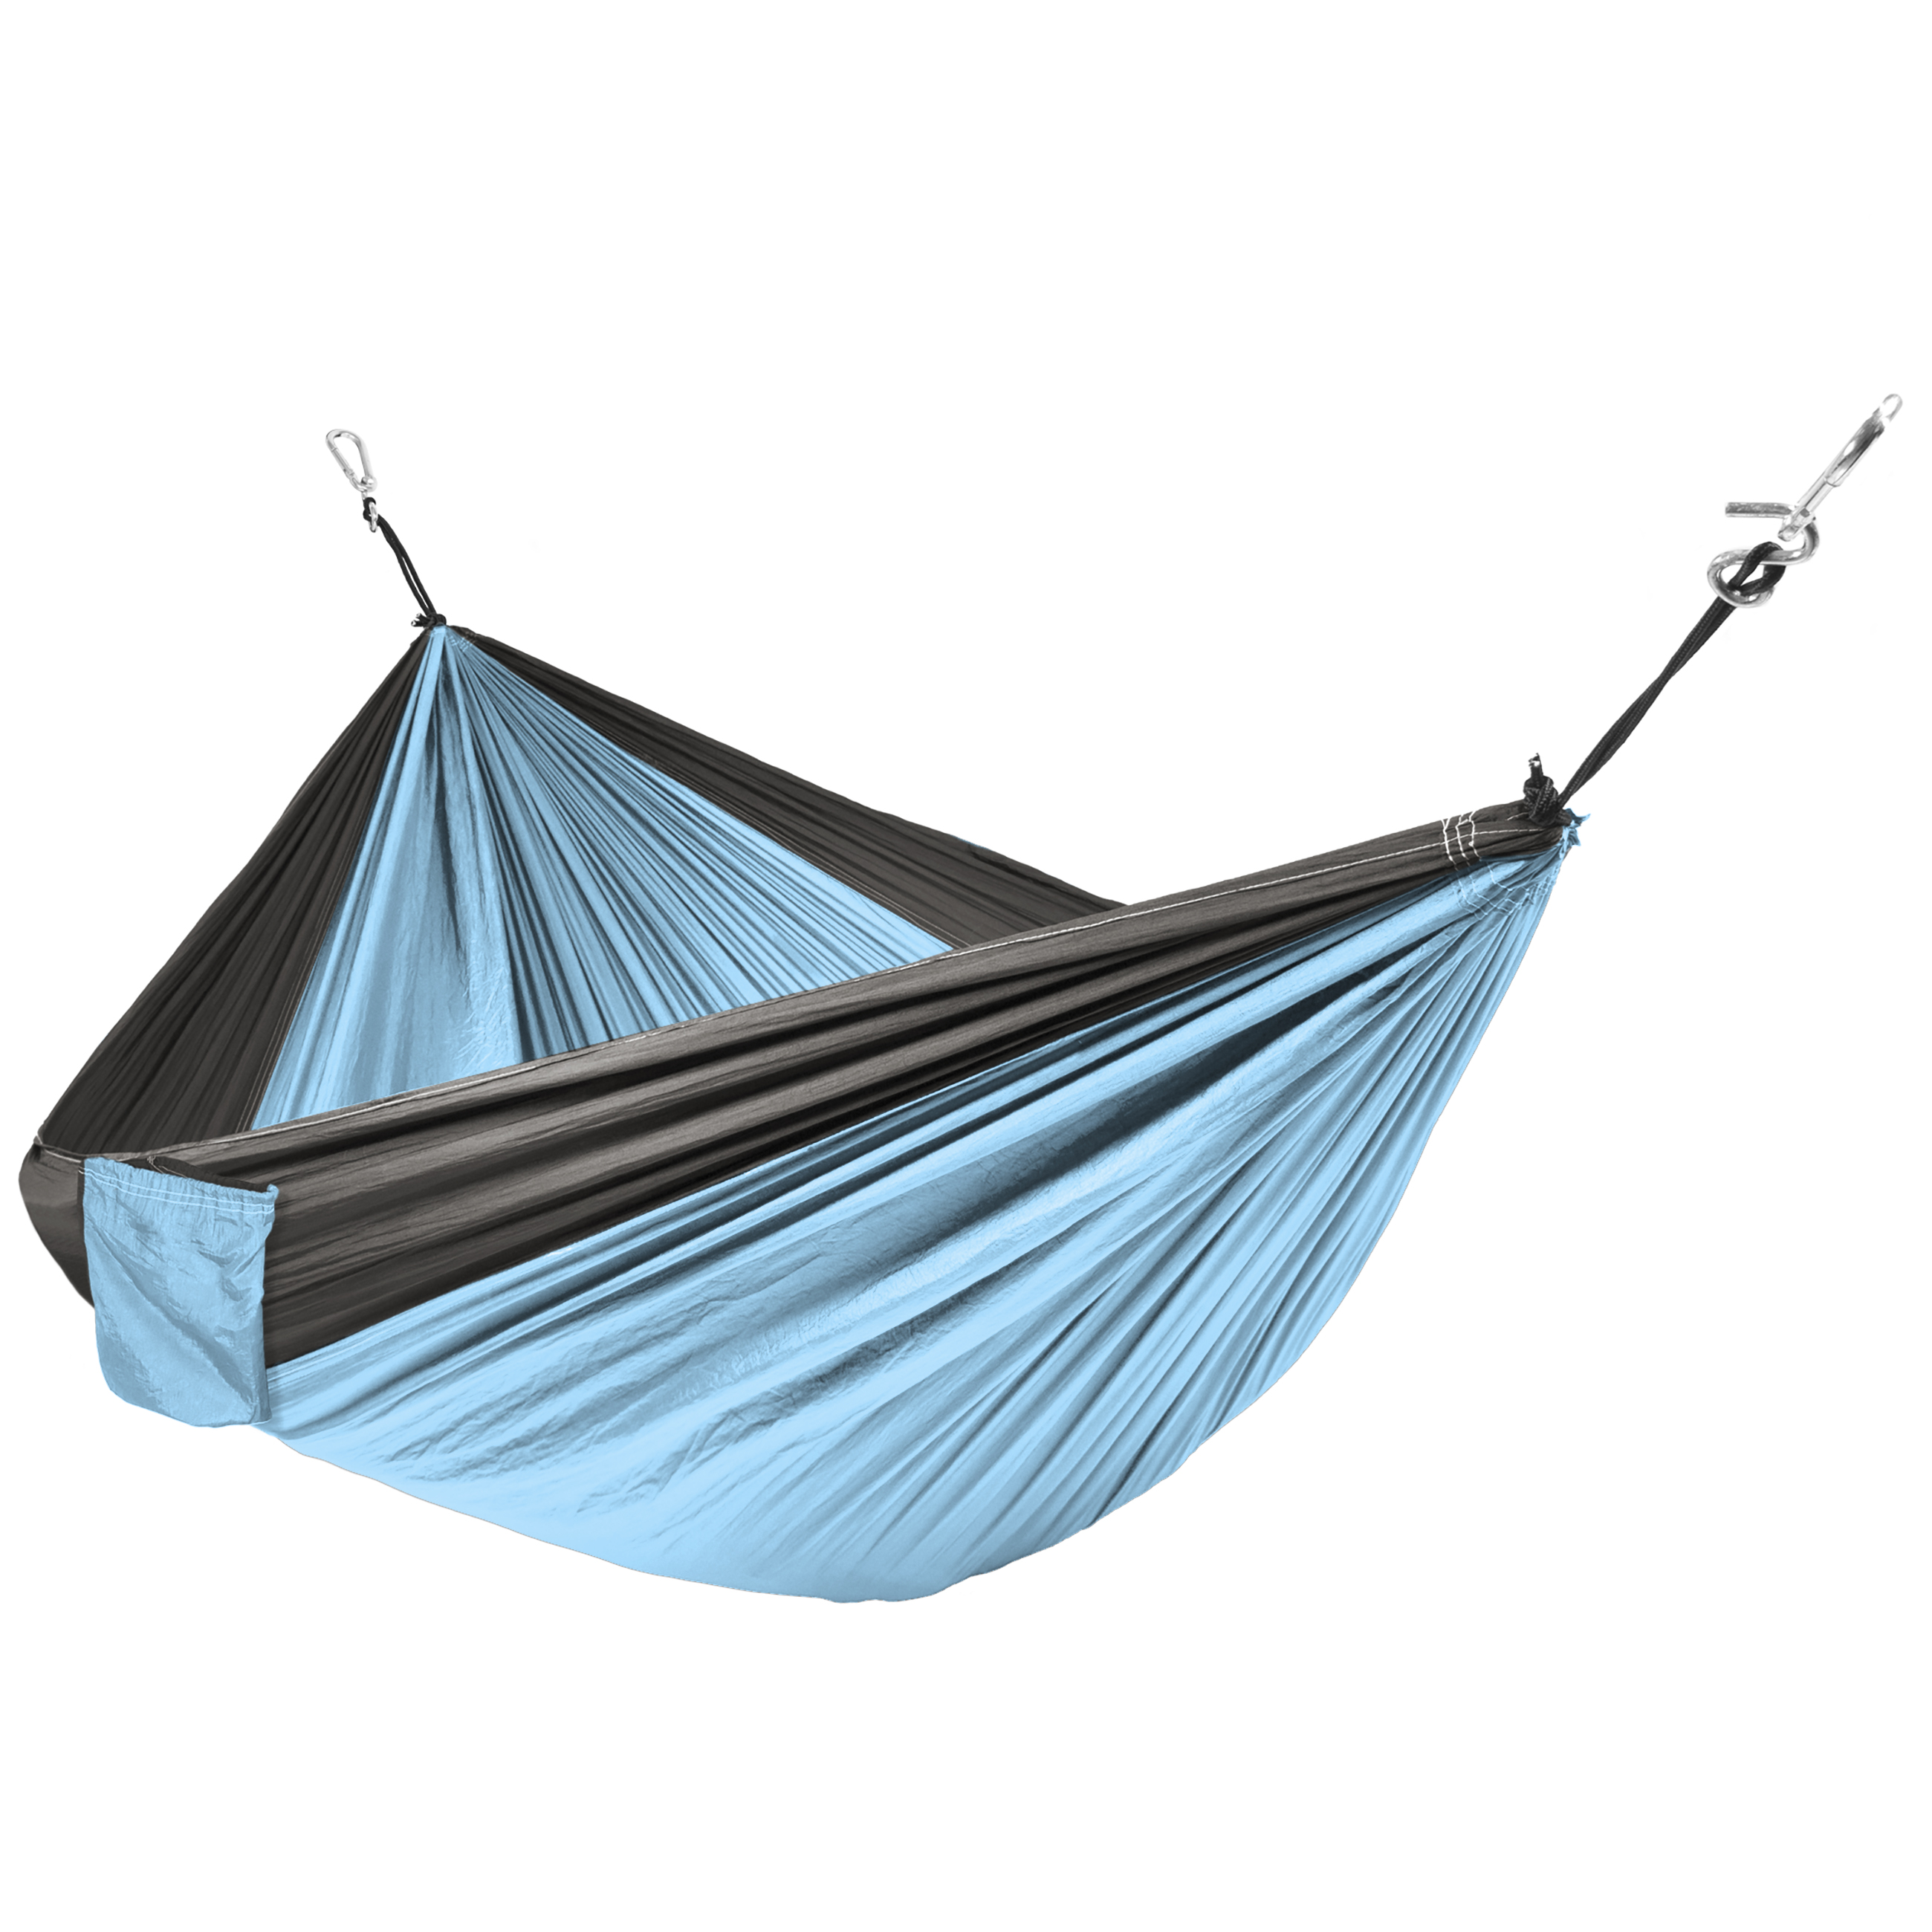 Best Choice Products Portable Parachute Hammock Nylon Hanging Outdoor Camping Patio Blue